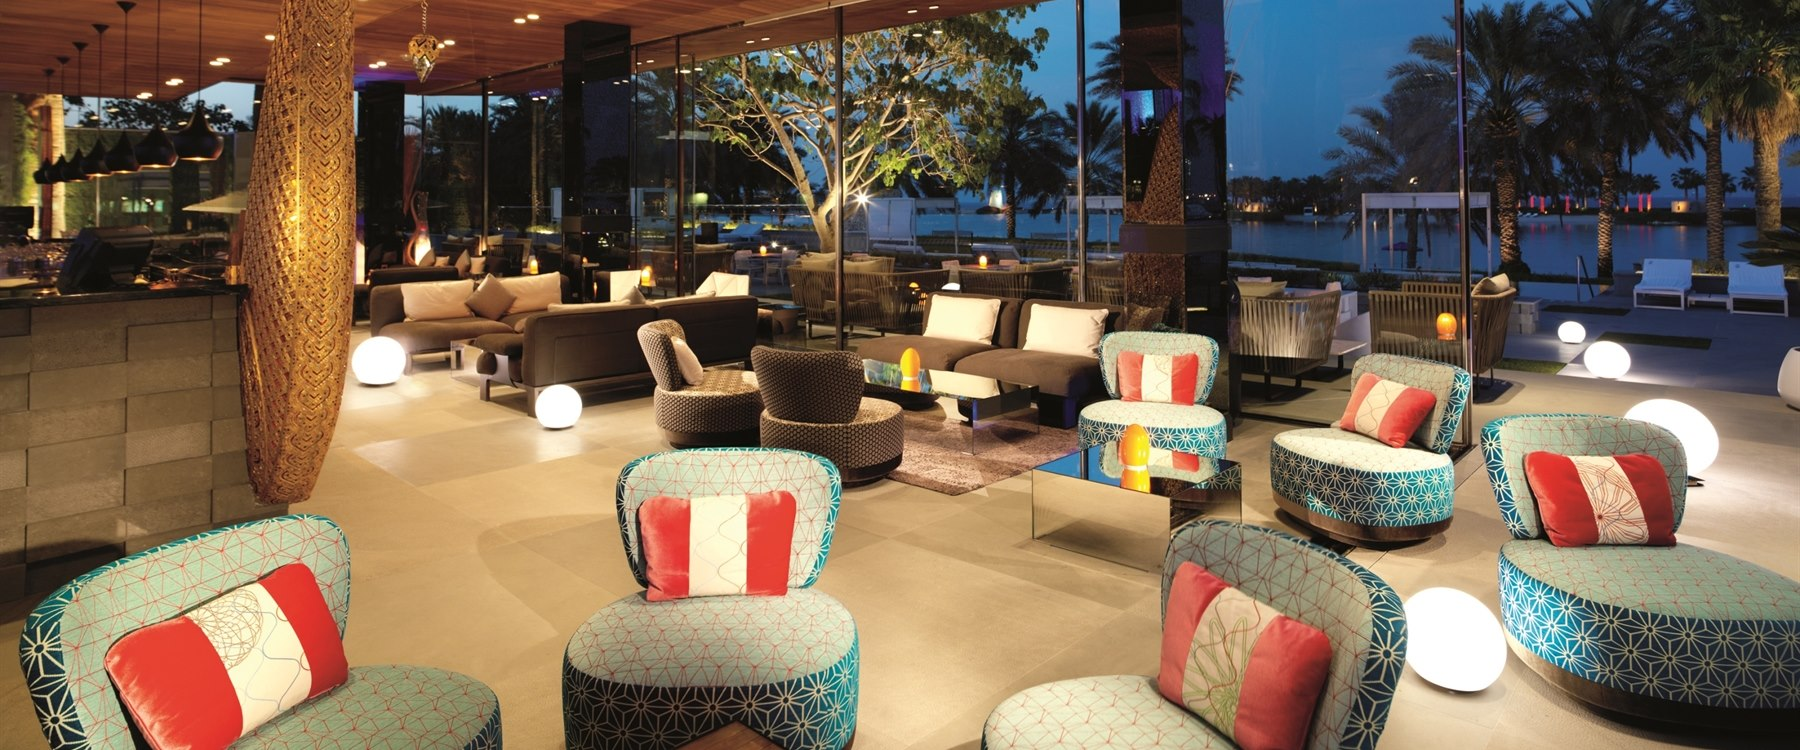 Thai Lounge at The Ritz Carlton Bahrain Hotel Villas and Spa